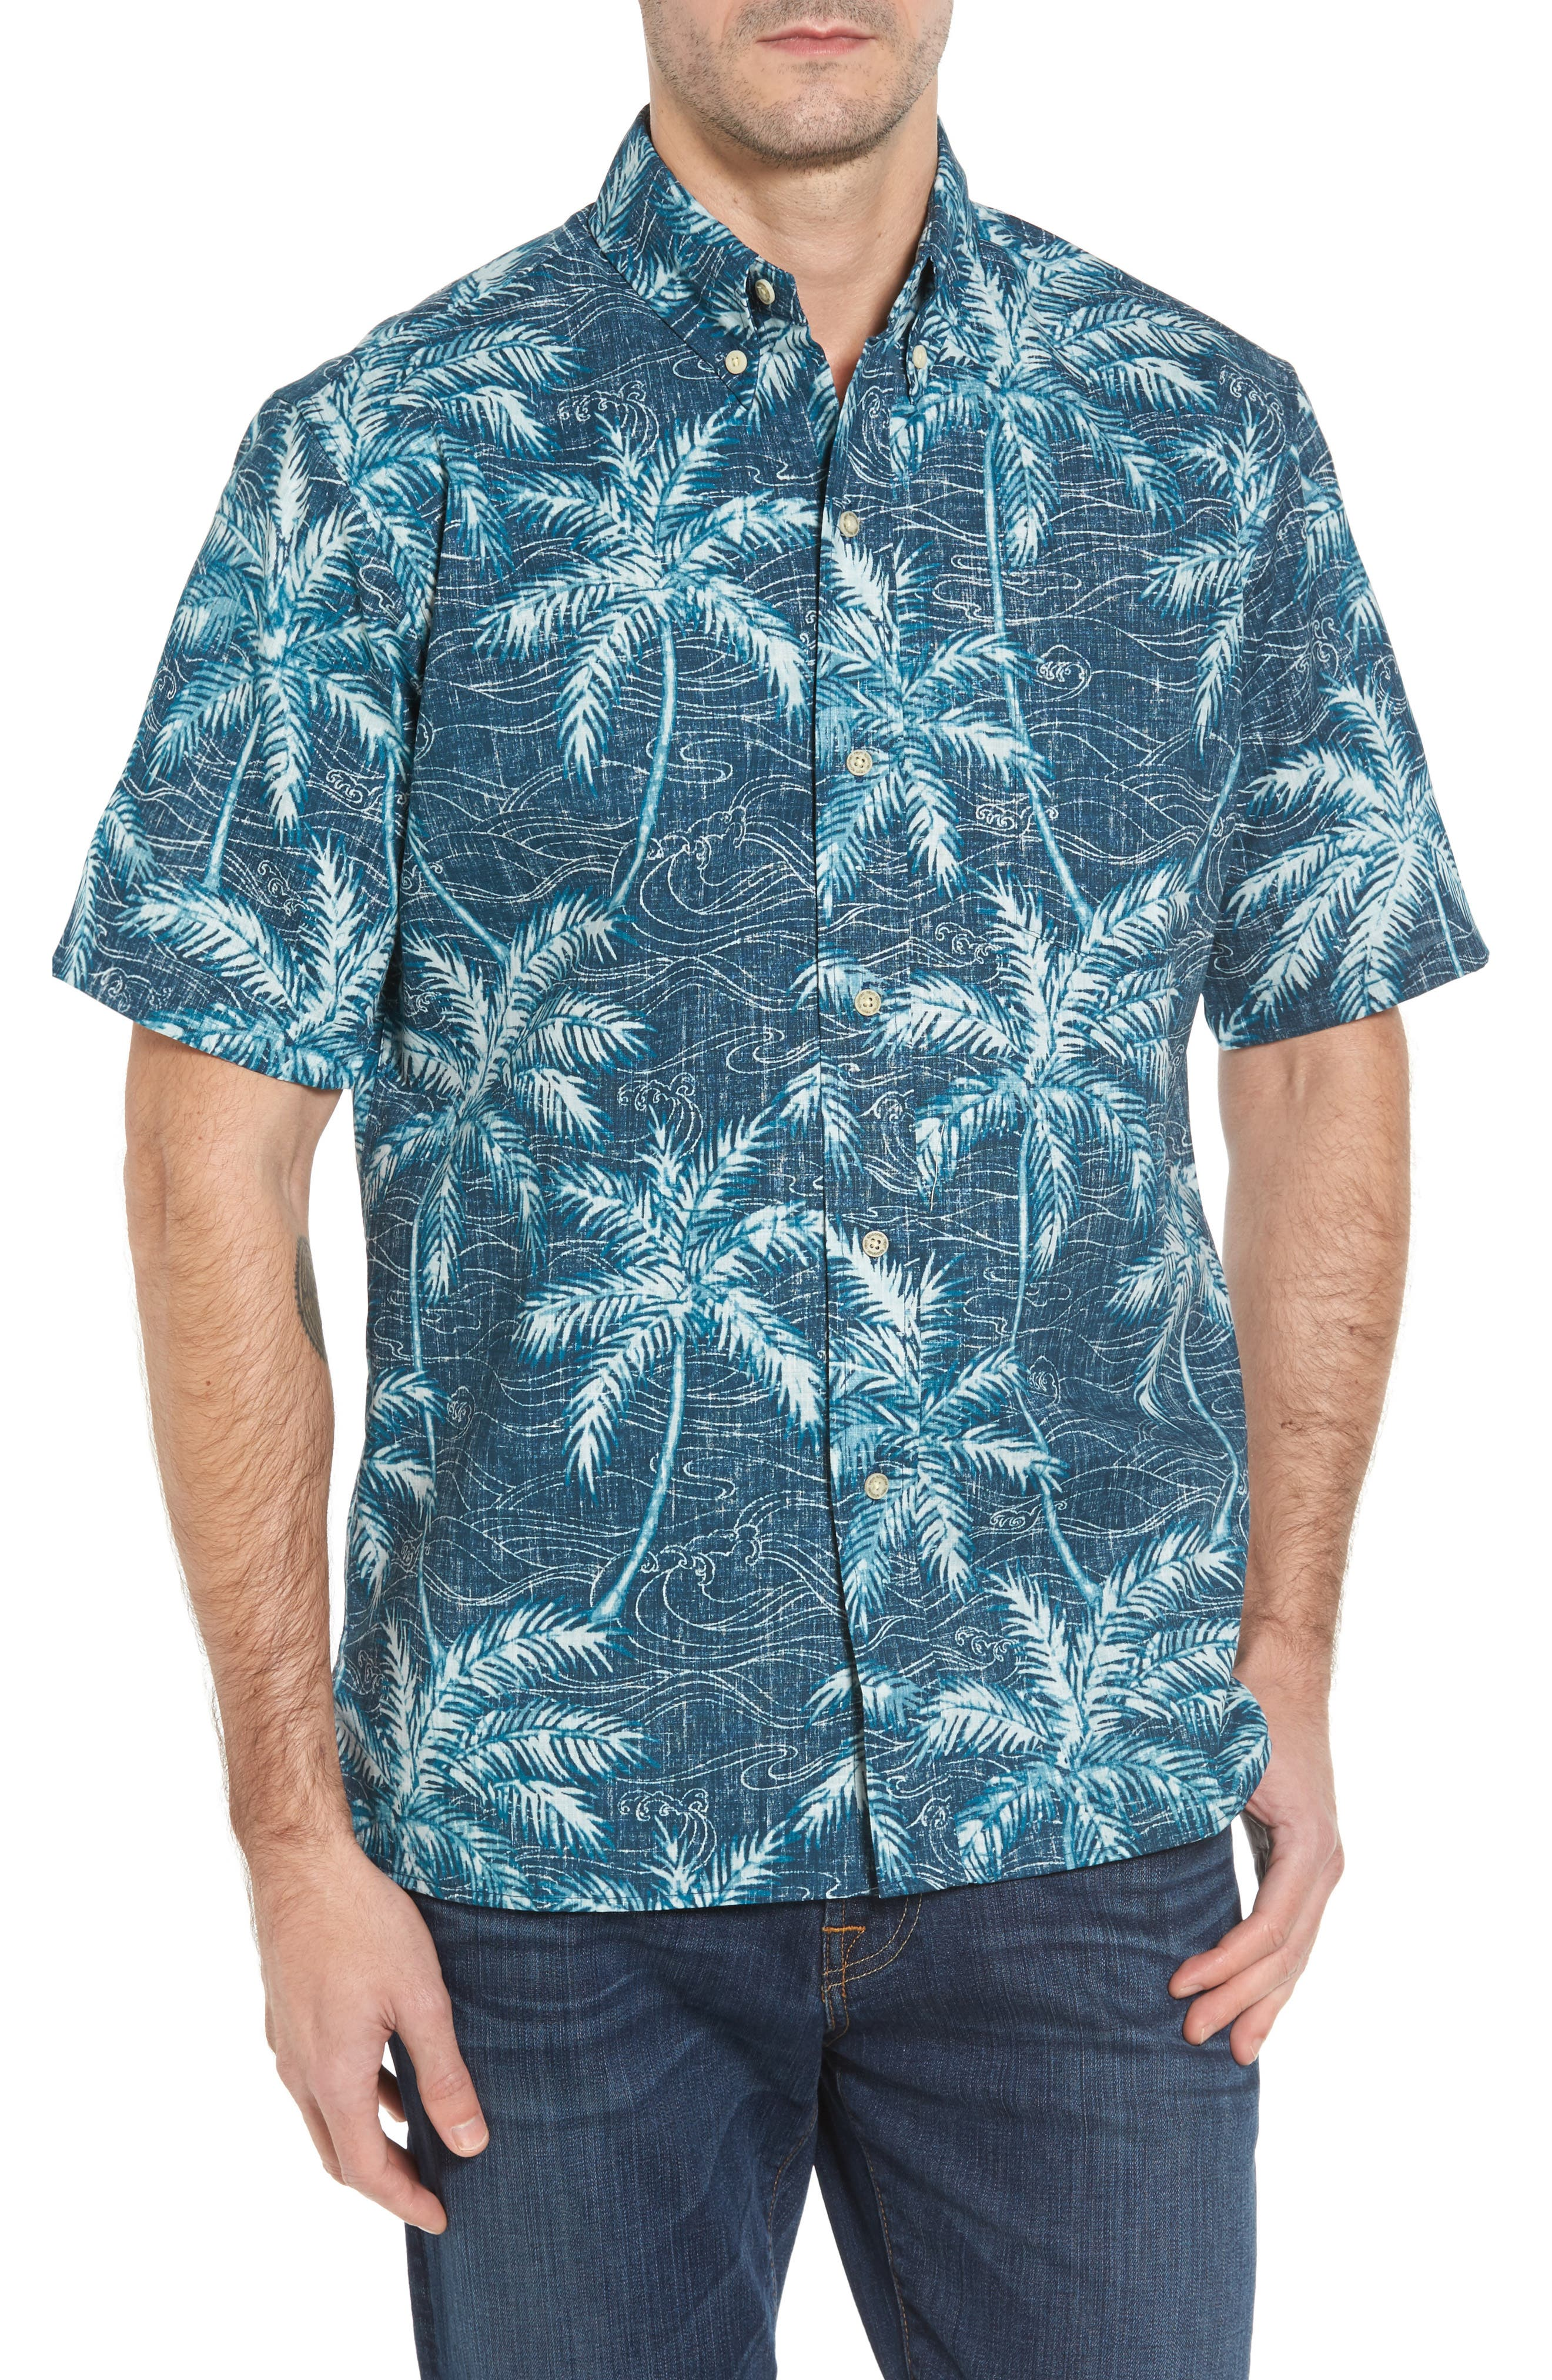 Main Image - Reyn Spooner Palm Seas Classic Fit Sport Shirt